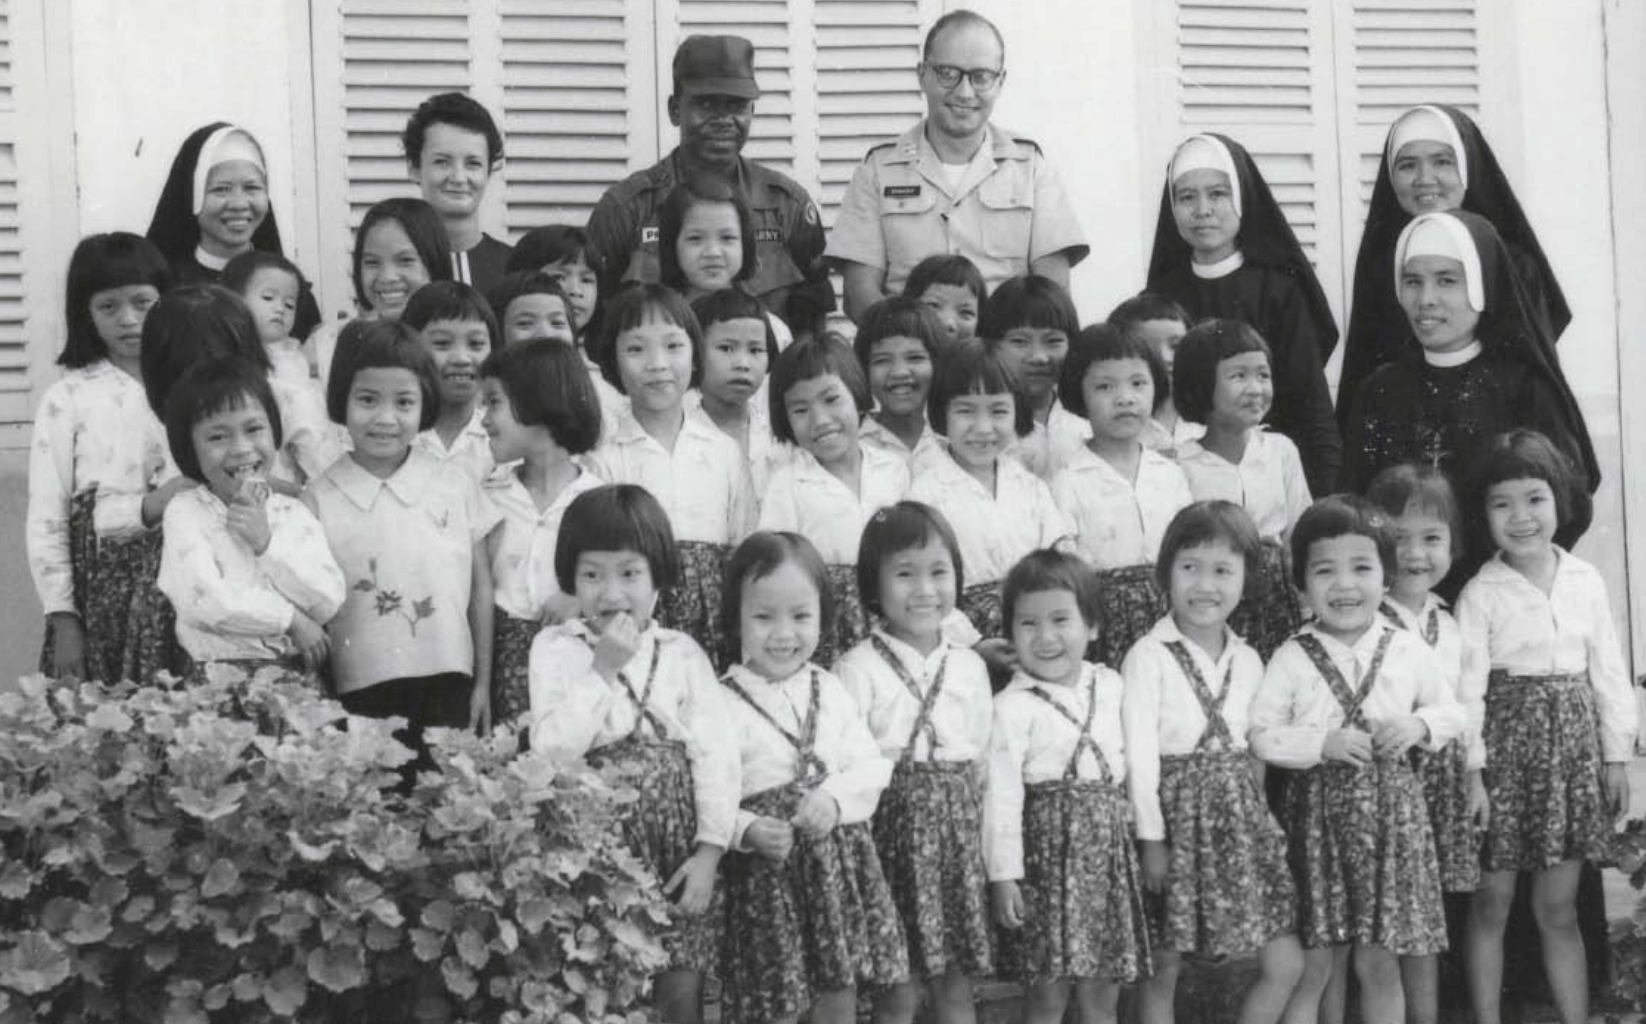 Dr. Donadio and one other serviceman with nuns and young orphaned girls.